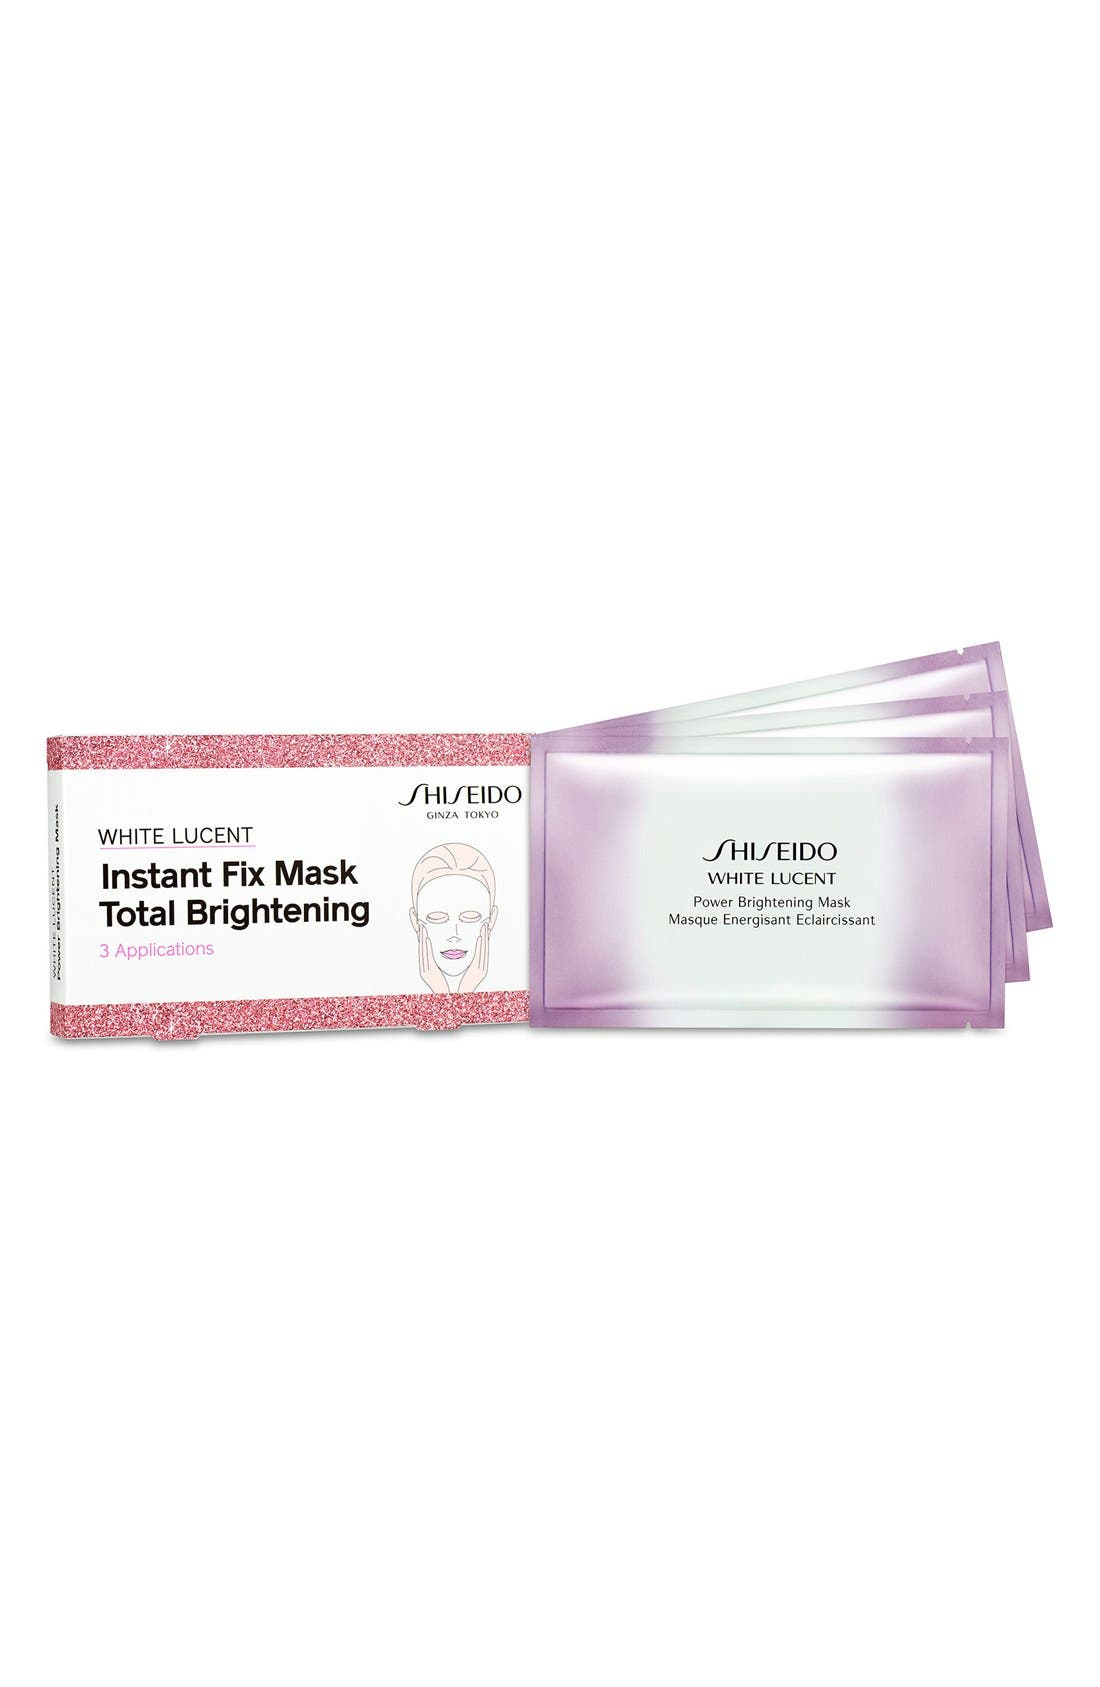 Shiseido 'White Lucent' Instant Fix Mask Total Brightening